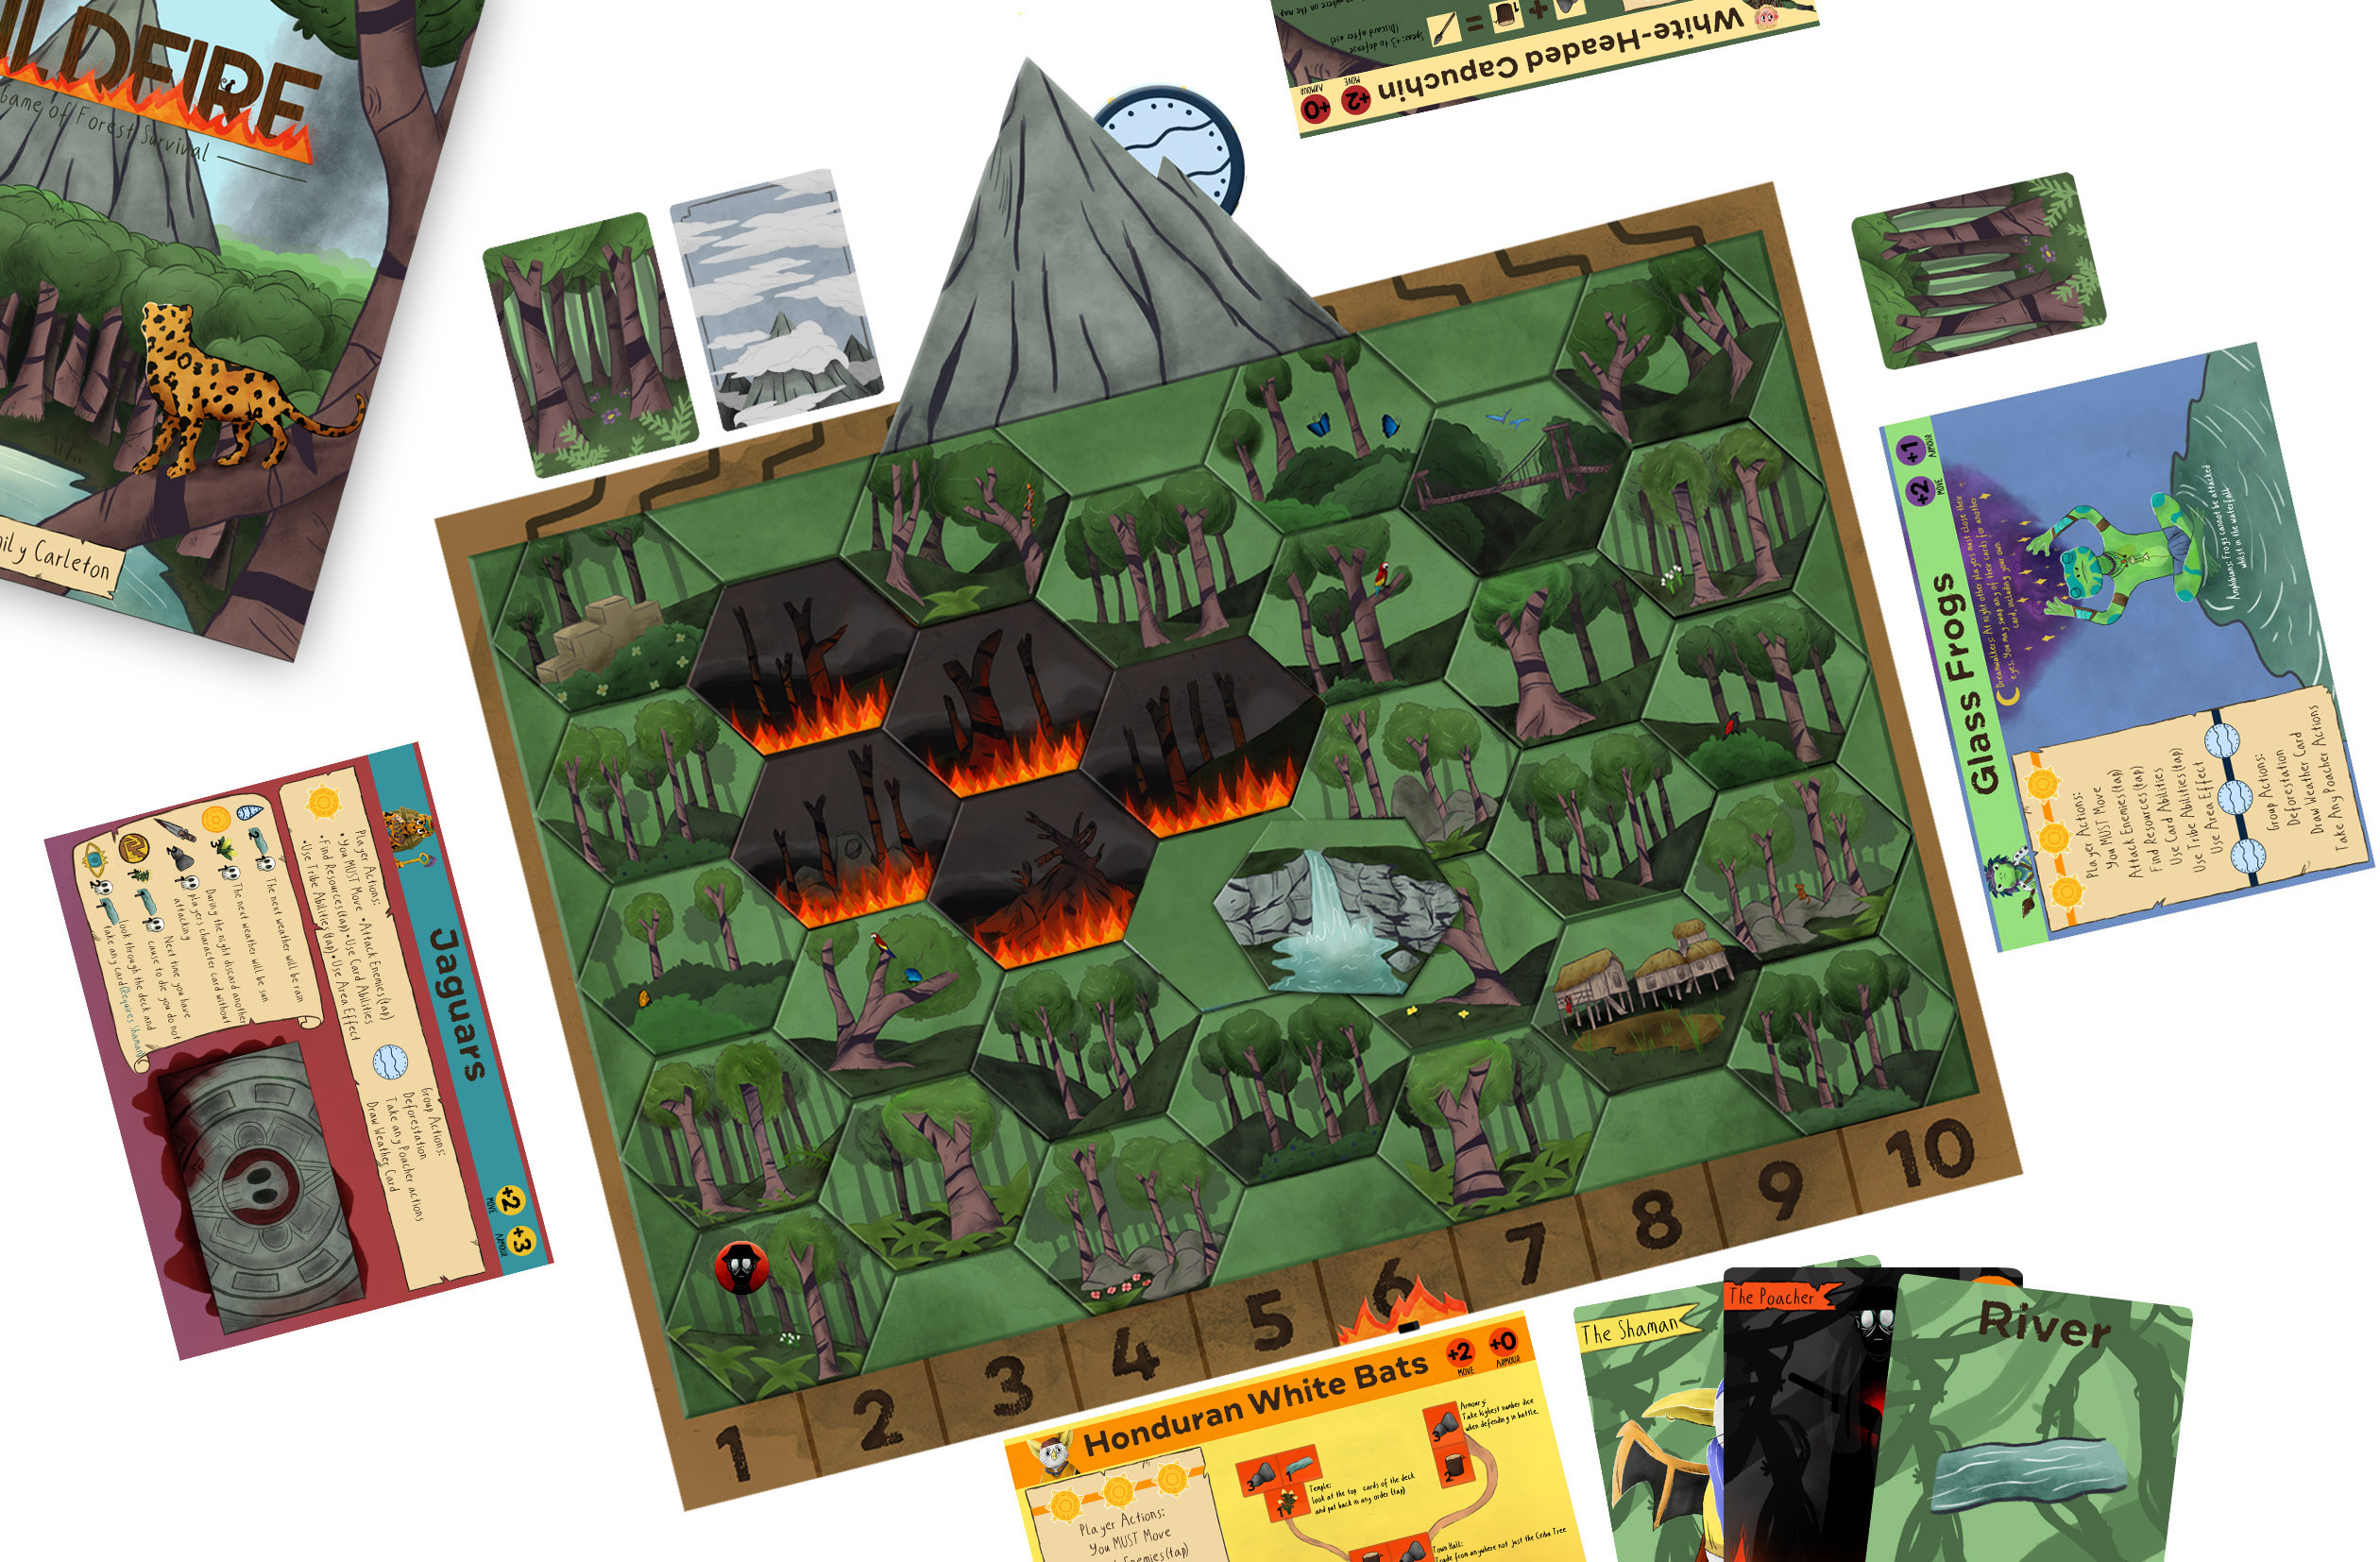 Mock up of a board game about deforestation showing an illustrated board, cards and box.